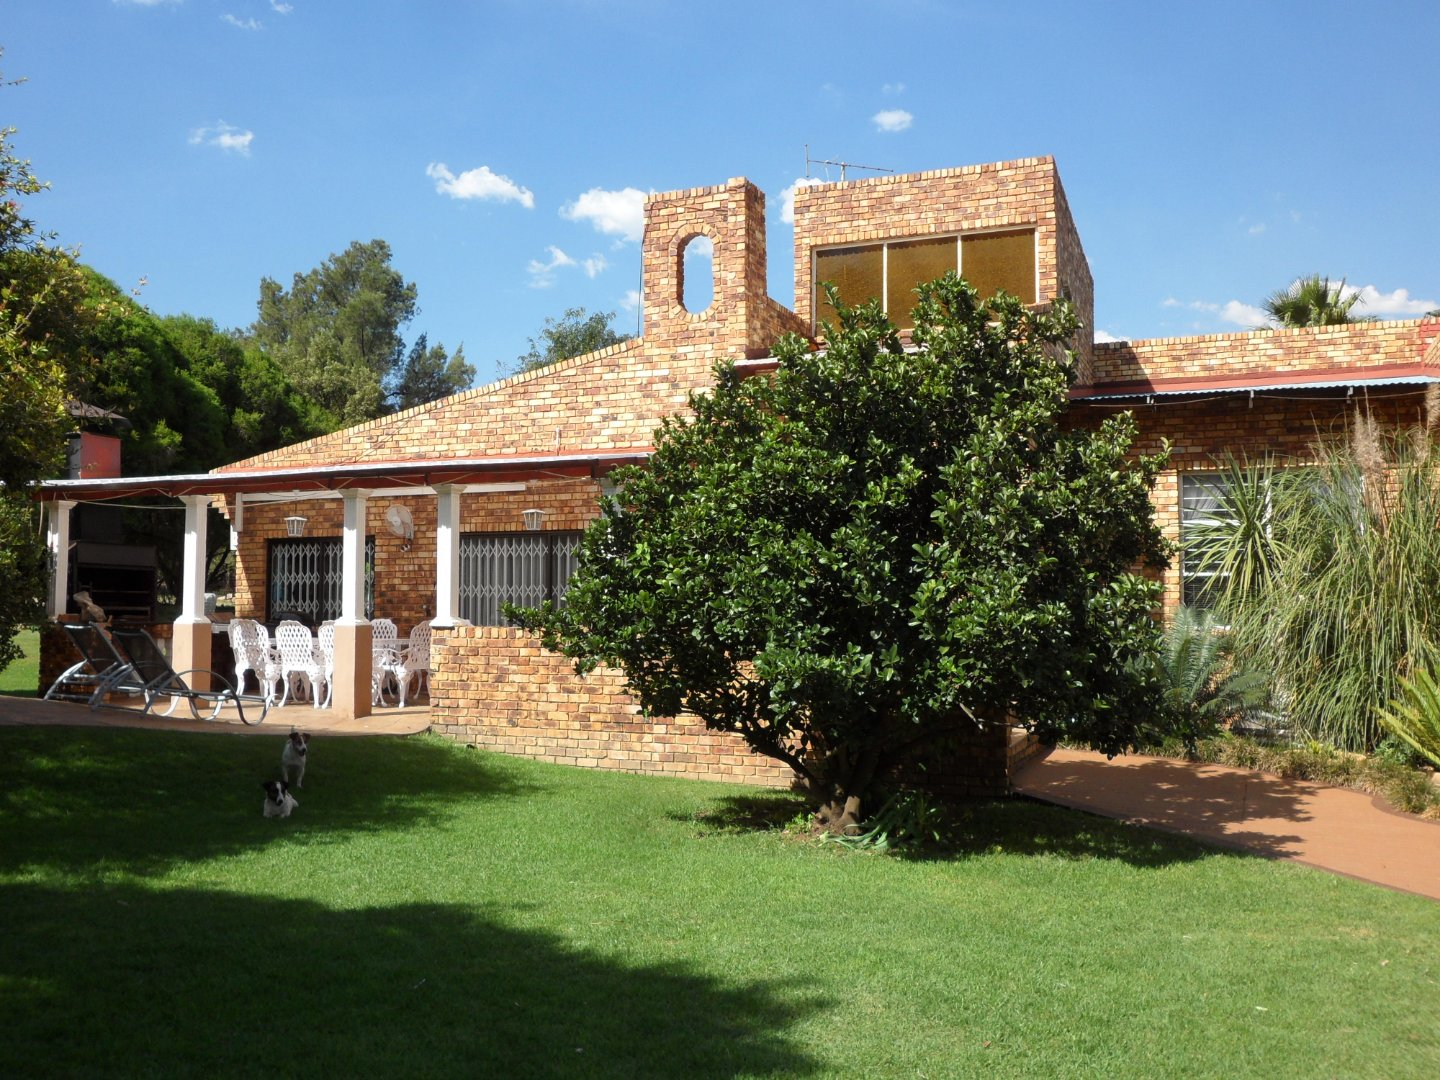 Kameeldrift West property for sale. Ref No: 13755943. Picture no 21